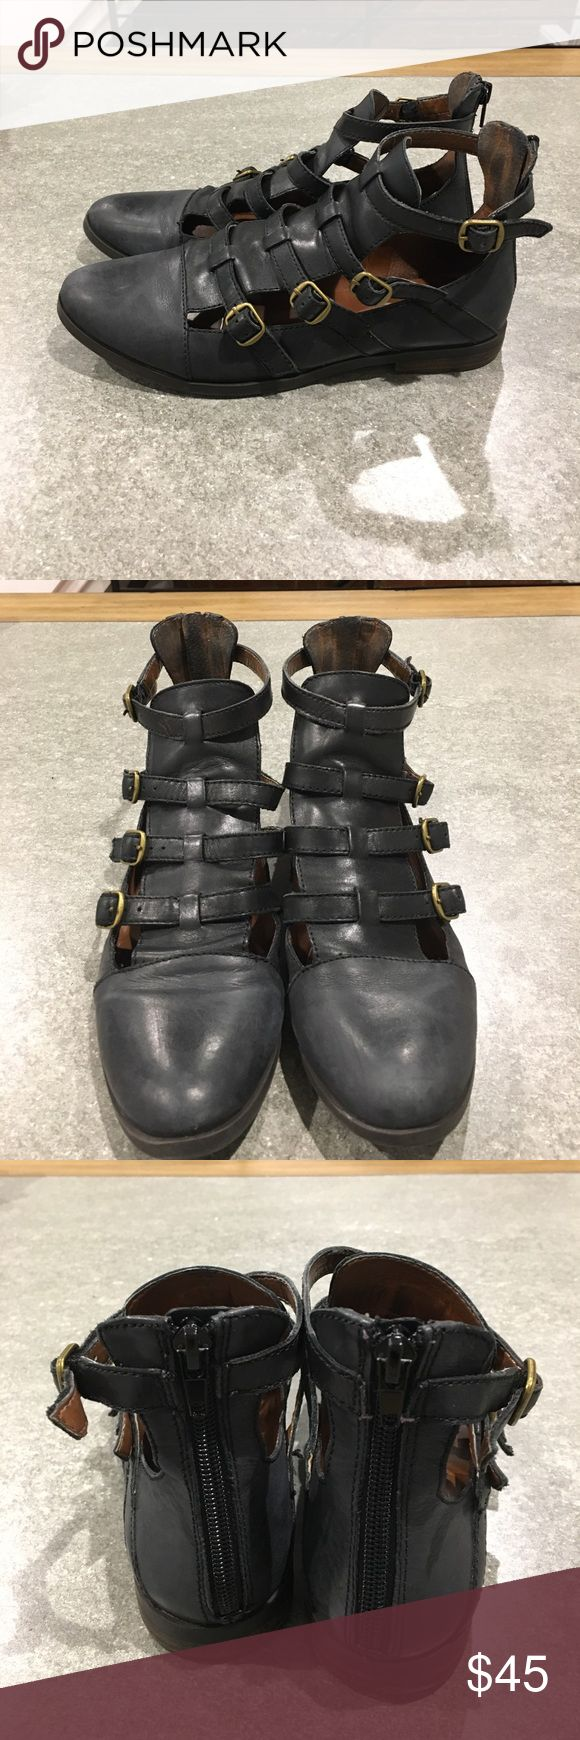 Lucky brand ankle buckle shoes Good used condition. 4 adjustable buckles on each shoe, and a zipper on the back for easy put on. Looks good with dresses and jeans. Ankle boots Lucky Brand Shoes Ankle Boots & Booties